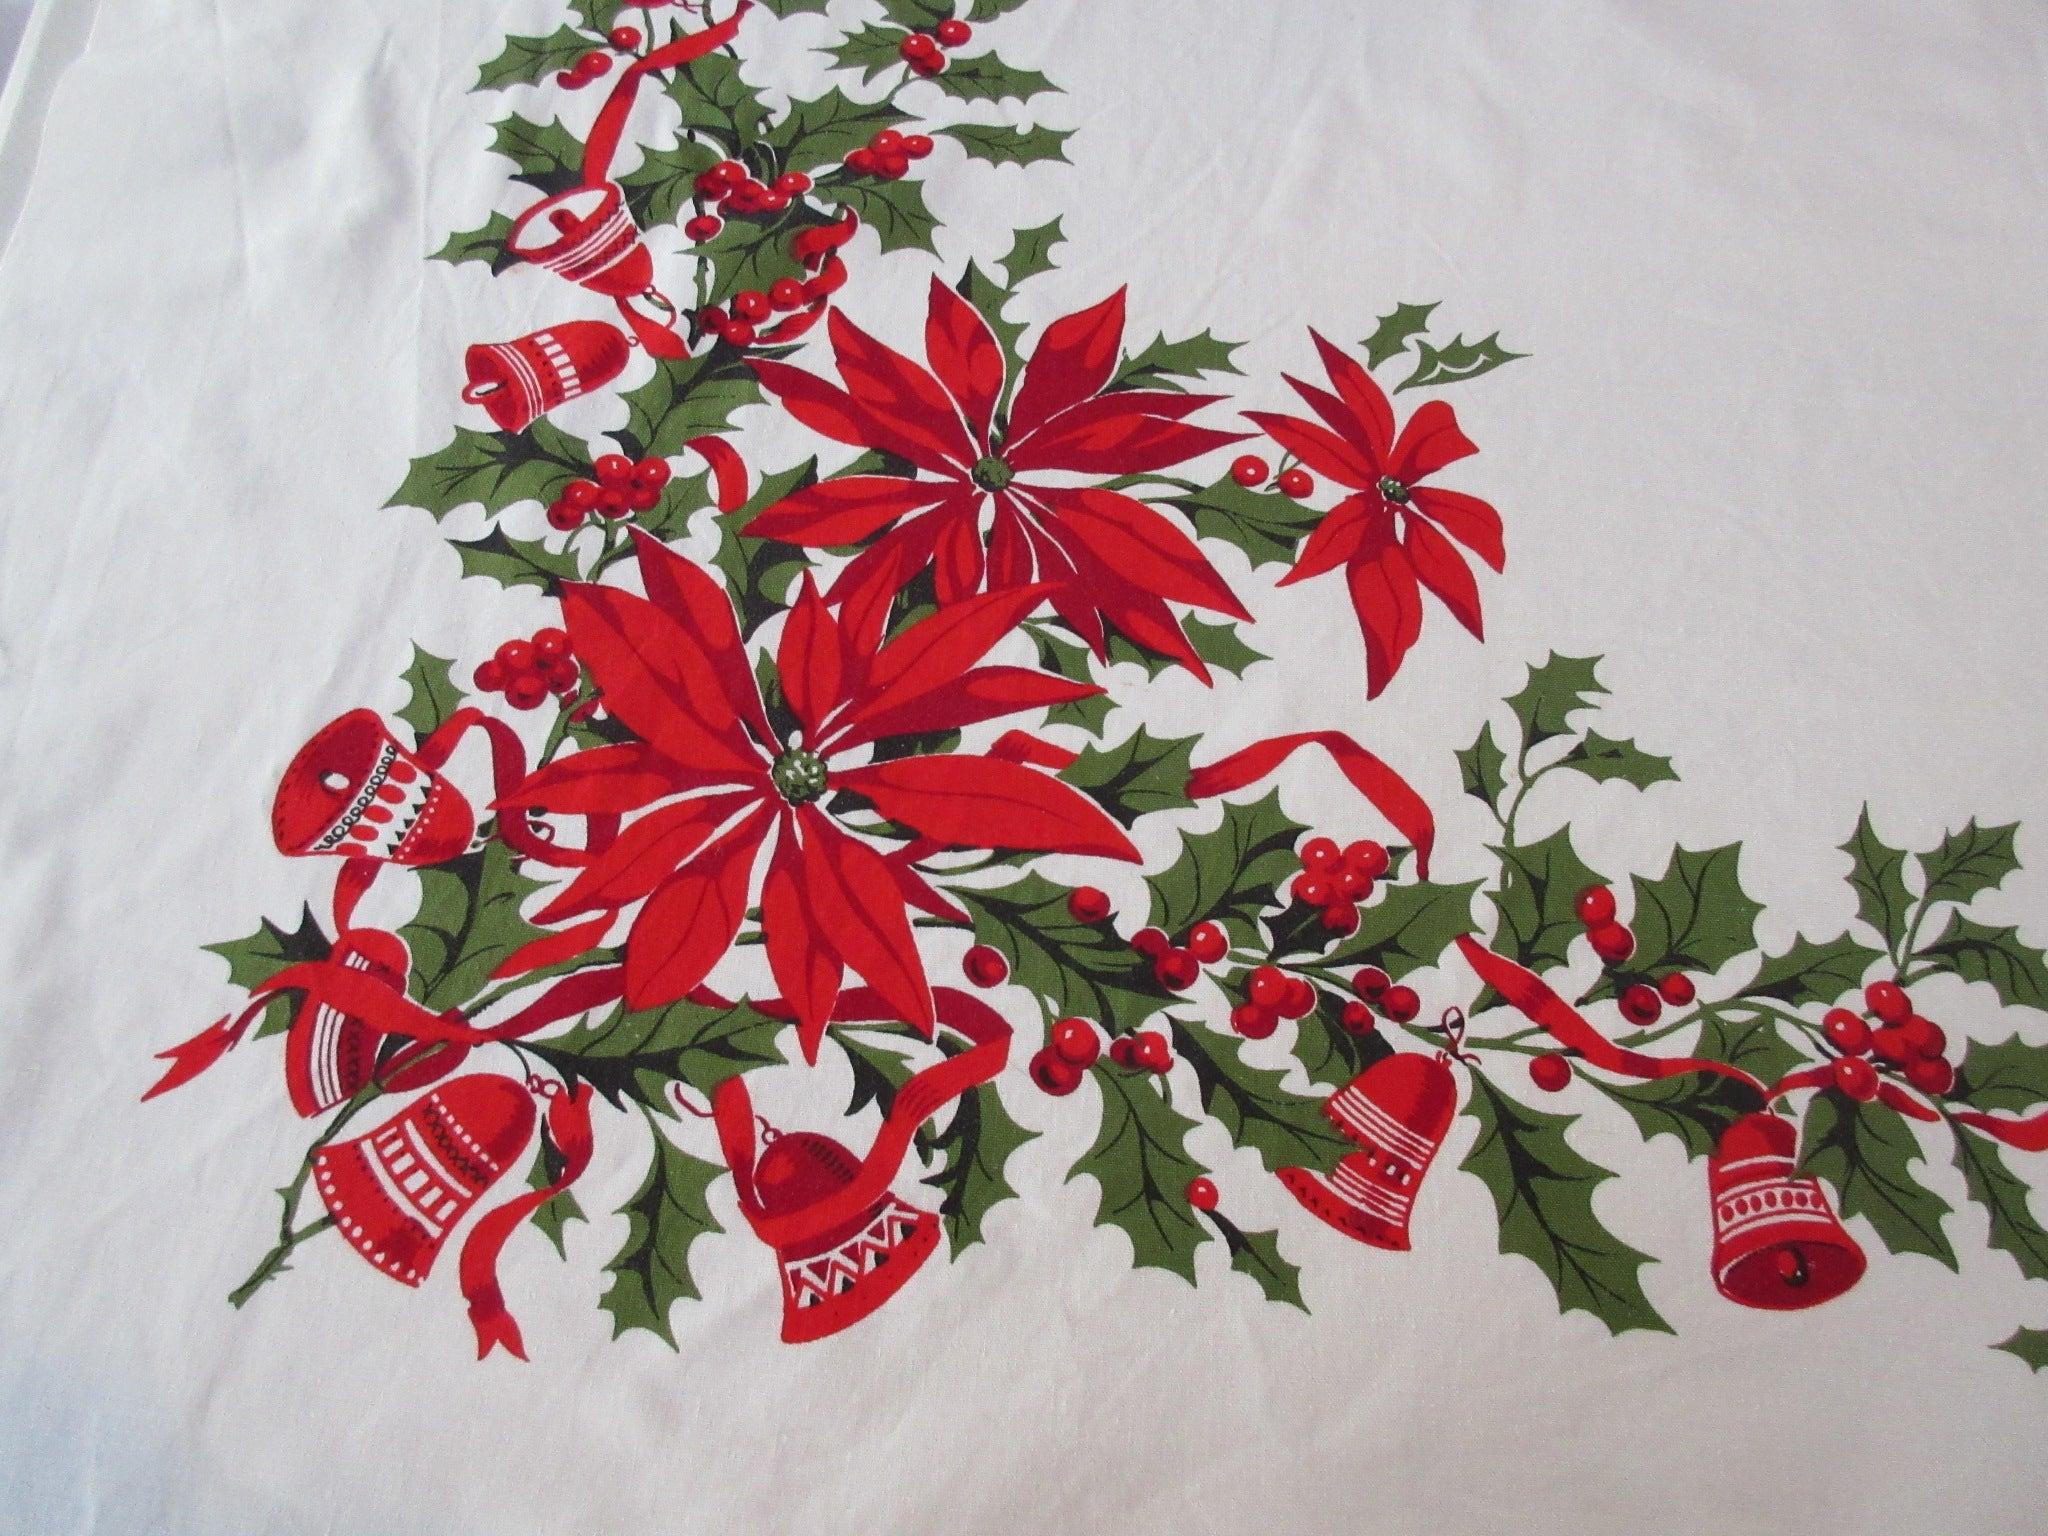 Wilendure Merry Christmas Poinsettia Bells Vintage Printed Tablecloth (53 X 50)